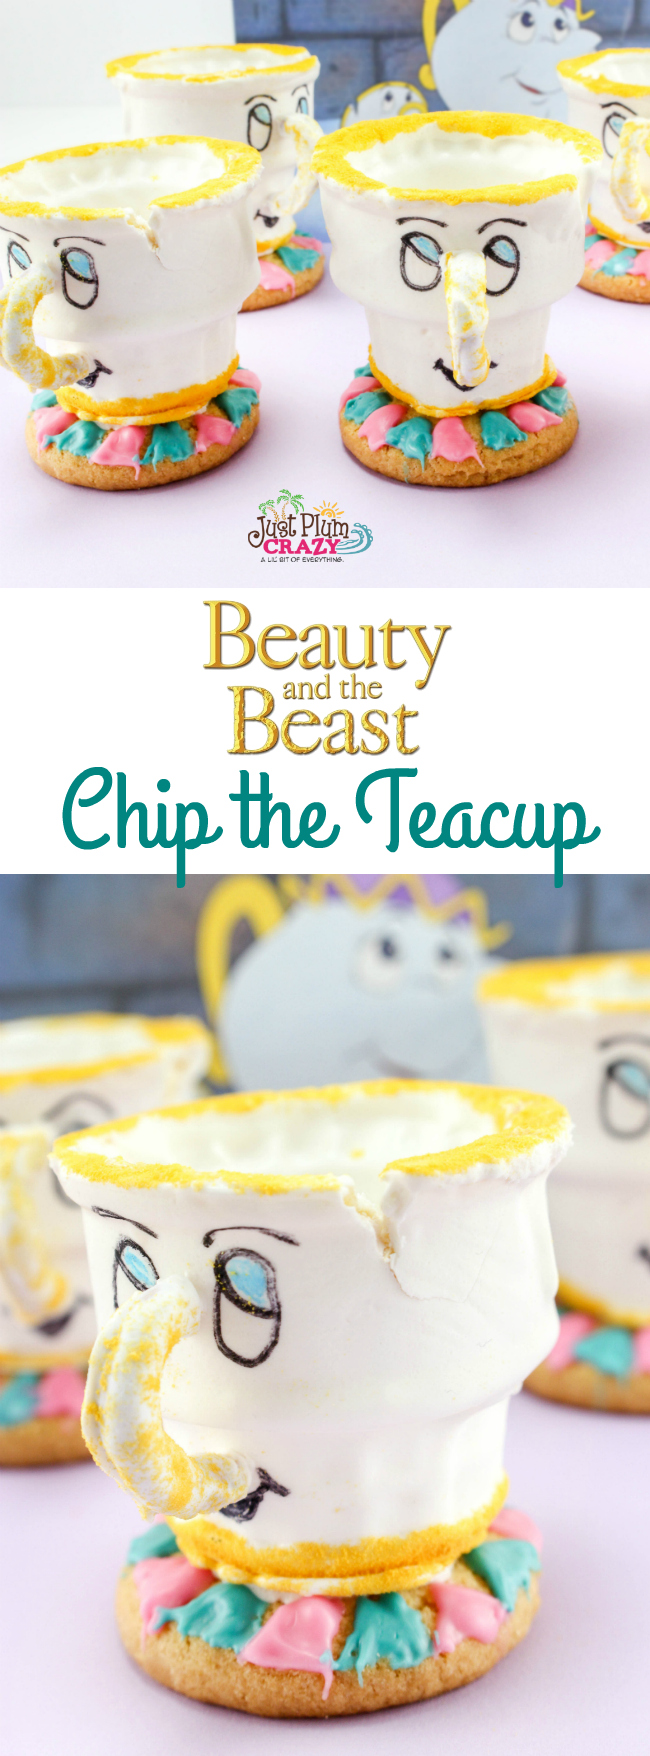 Beauty and the Beast teacup cupcake